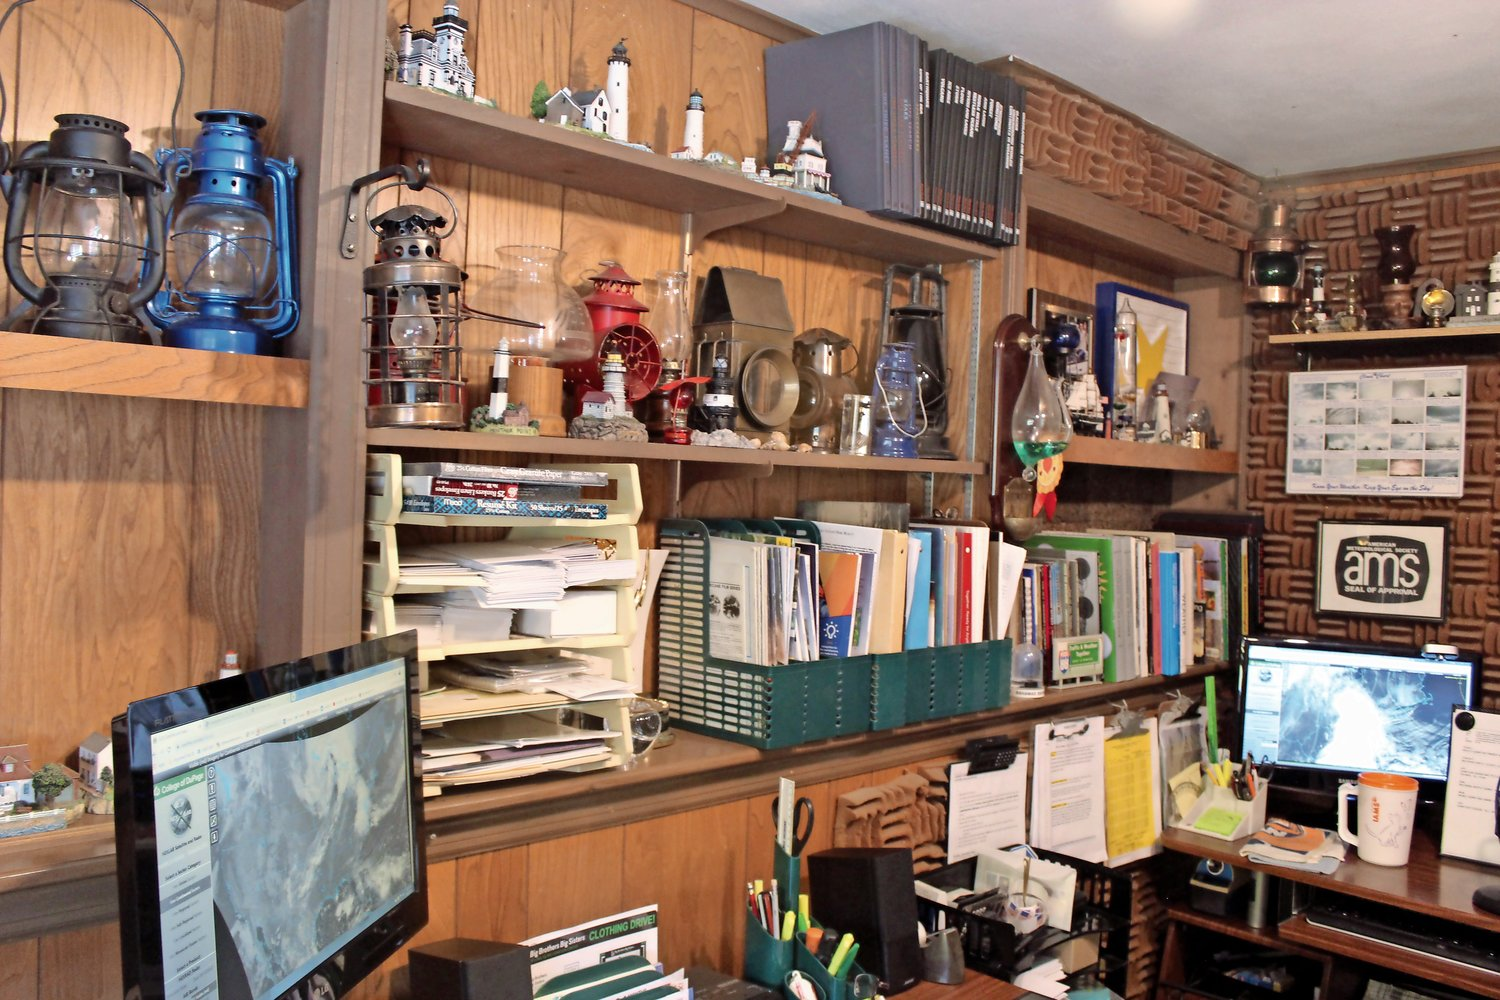 Allen's home office is lined with weather manuals, awards, citations, hurricane lanterns and souvenir lighthouses.